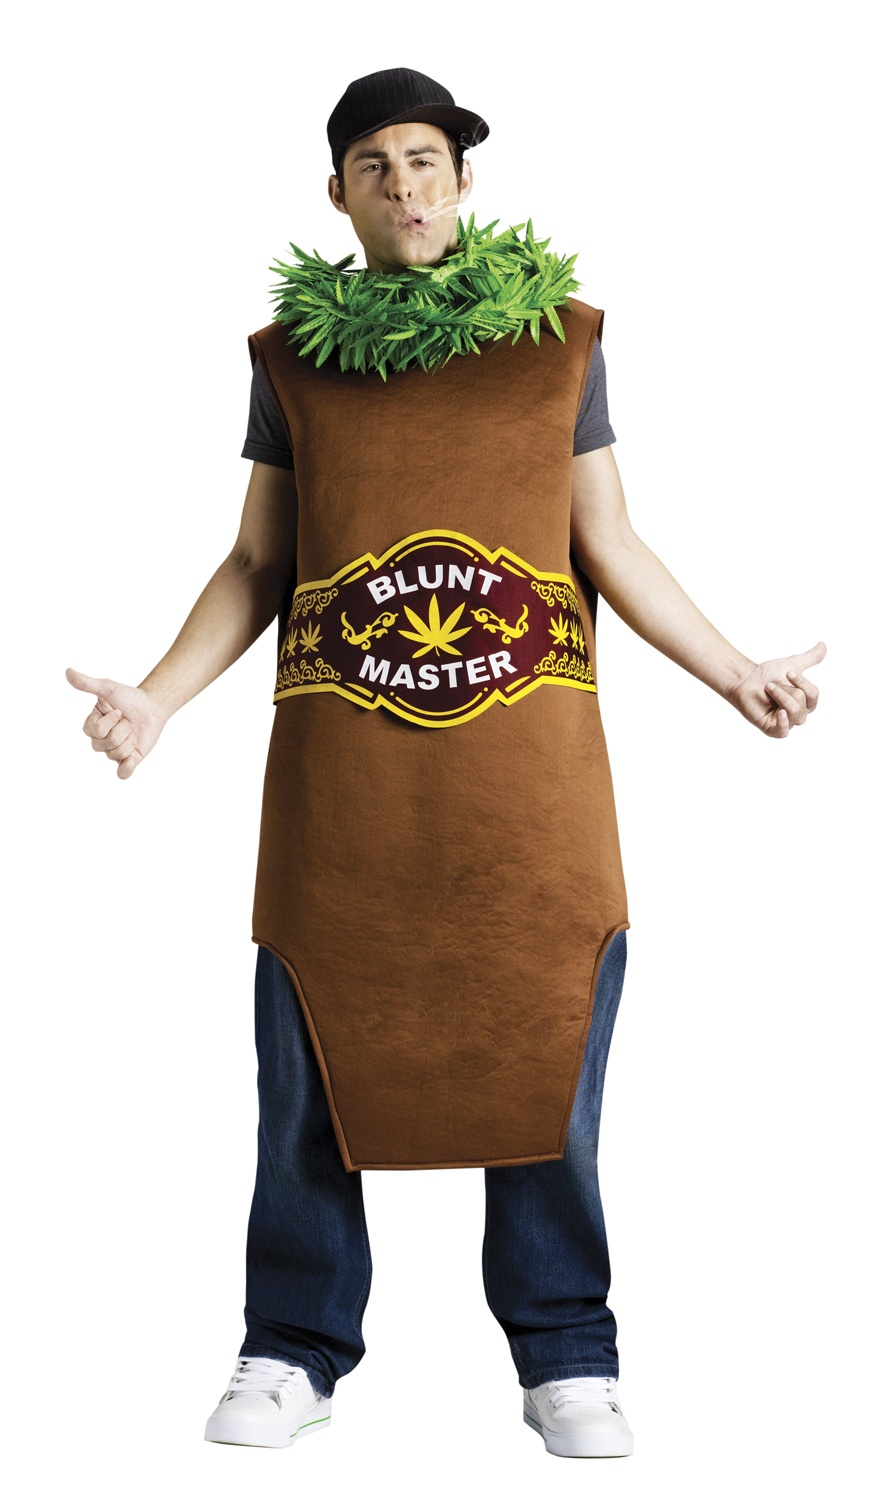 Messages all funny halloween costume regret, that